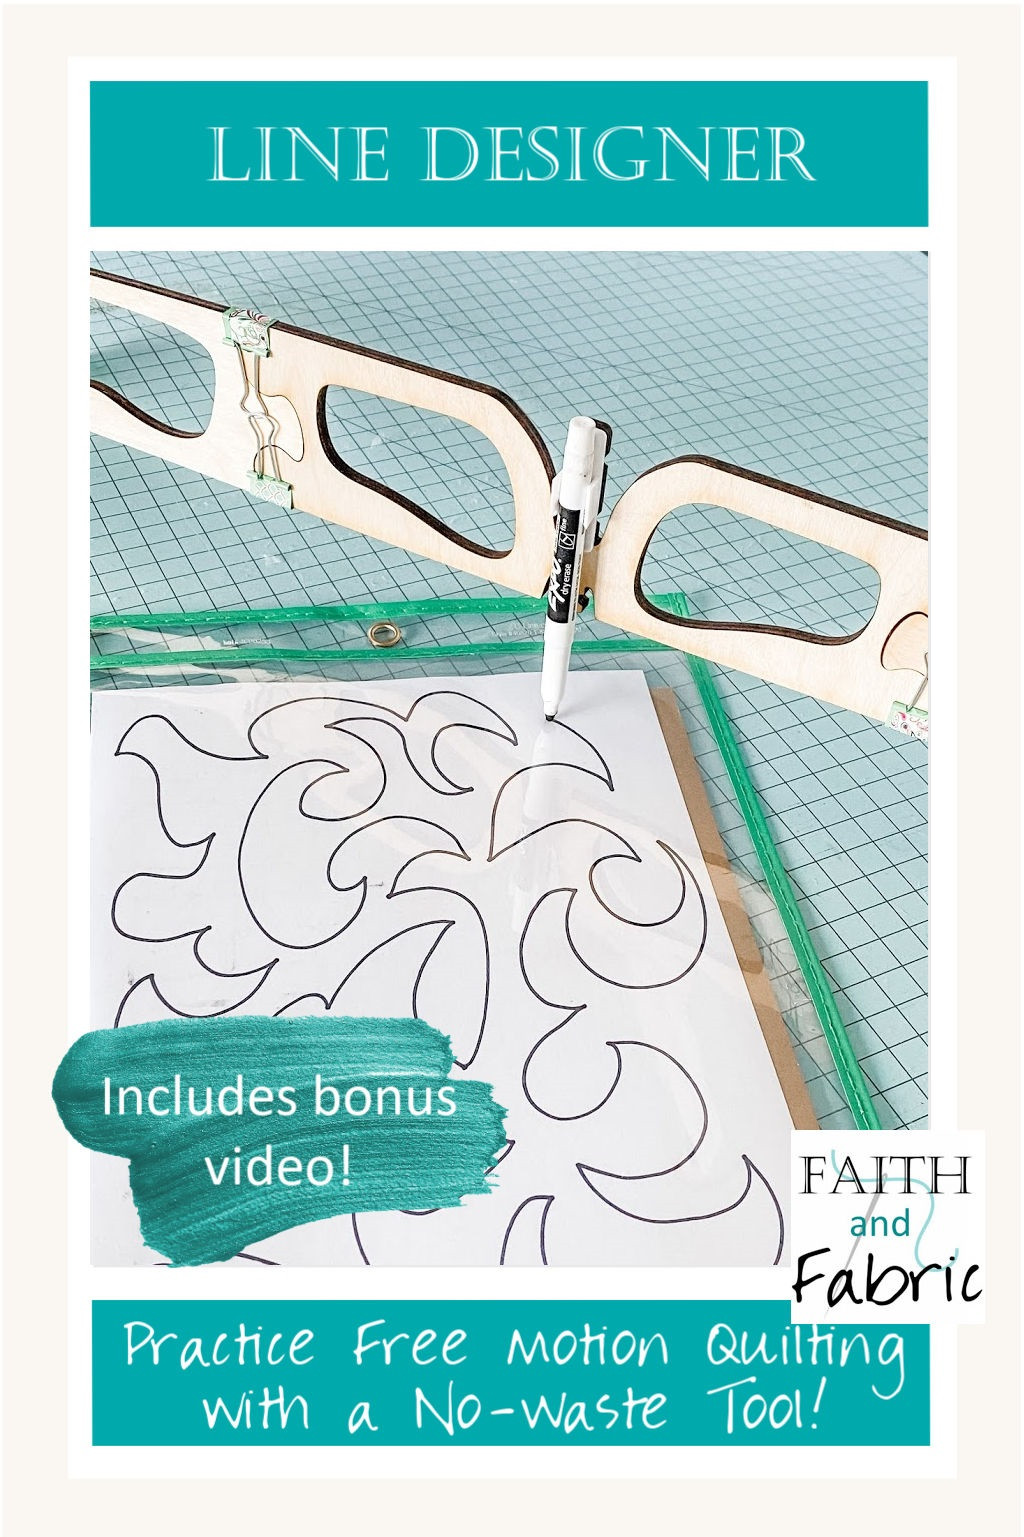 Looking for a better way to practice your Free Motion Quilting? The Line Designer tool is the answer! Practice your latest free motion quilting design on the reusable and wipeable drawing pad using a dry-erase pen; it mirrors the needle on your machine, giving you an opportunity to practice your newest FMQ design without wasting practicing pads!